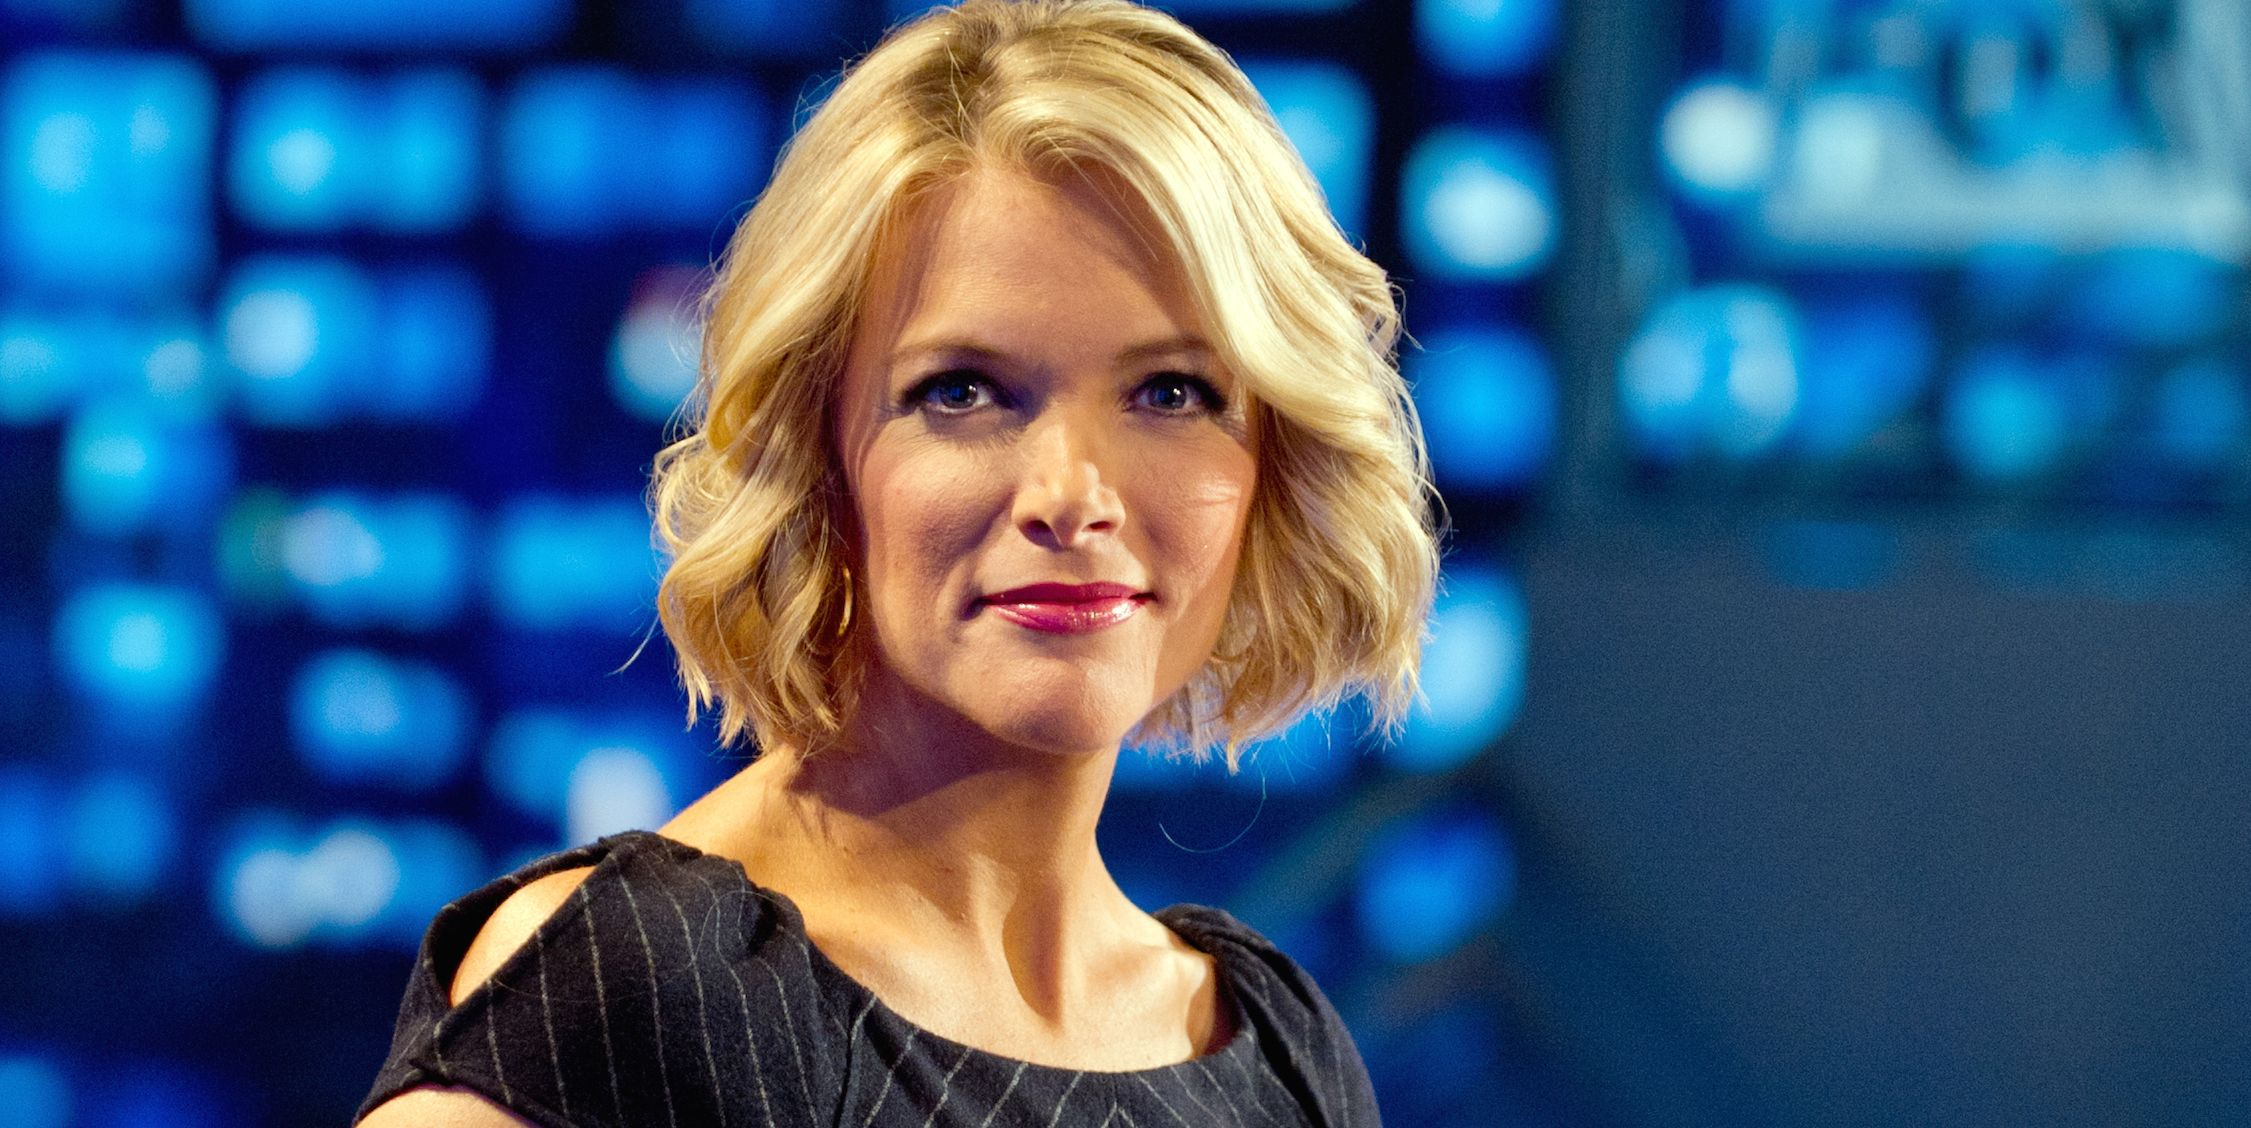 """Megyn Kelly's Cameraman Just Yelled """"Sh*t!"""" on Live TV, So No Her New Show Is Not Going Great"""